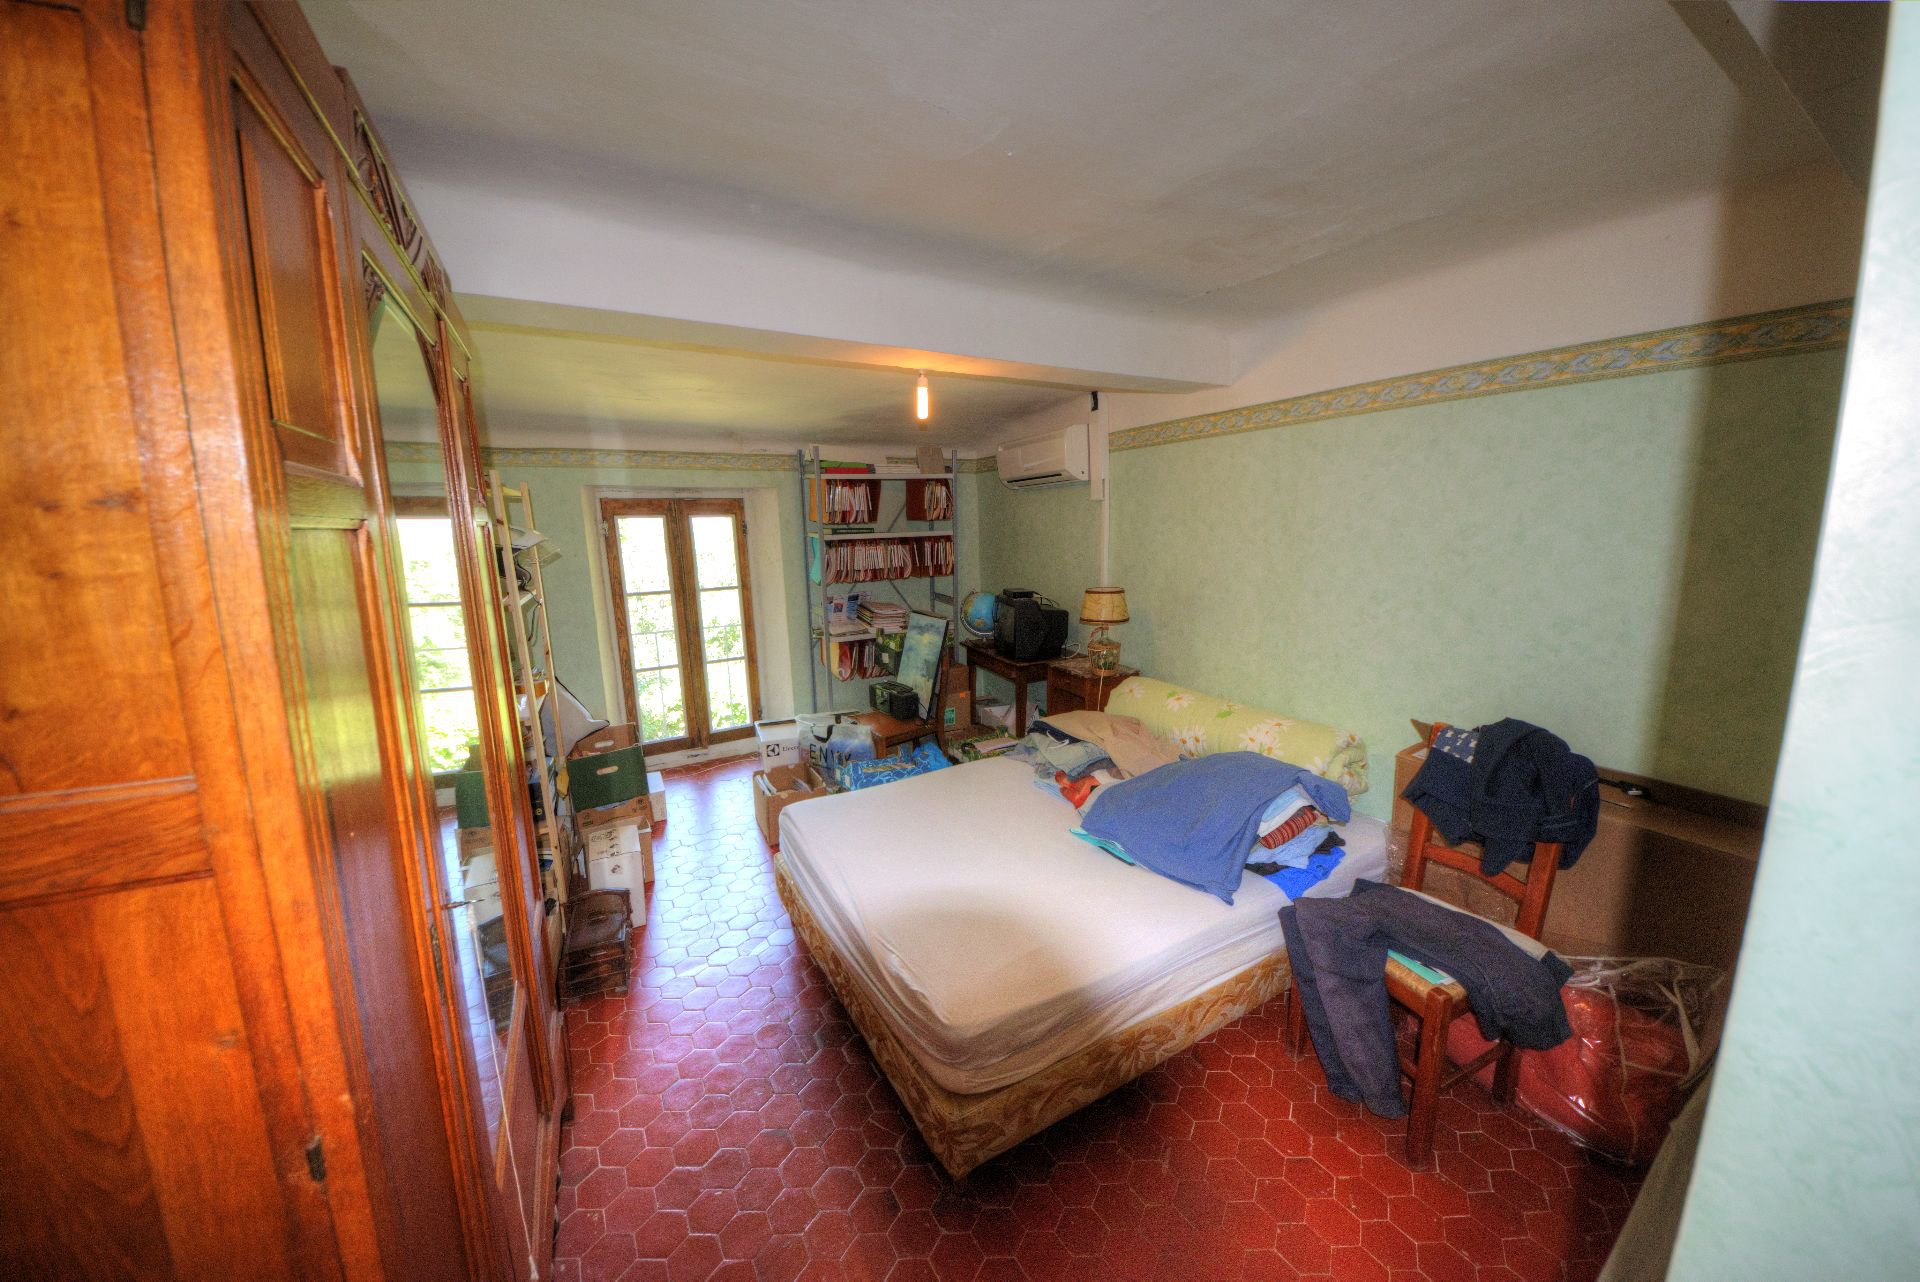 second bedroom bastide with a plot of land and well Var